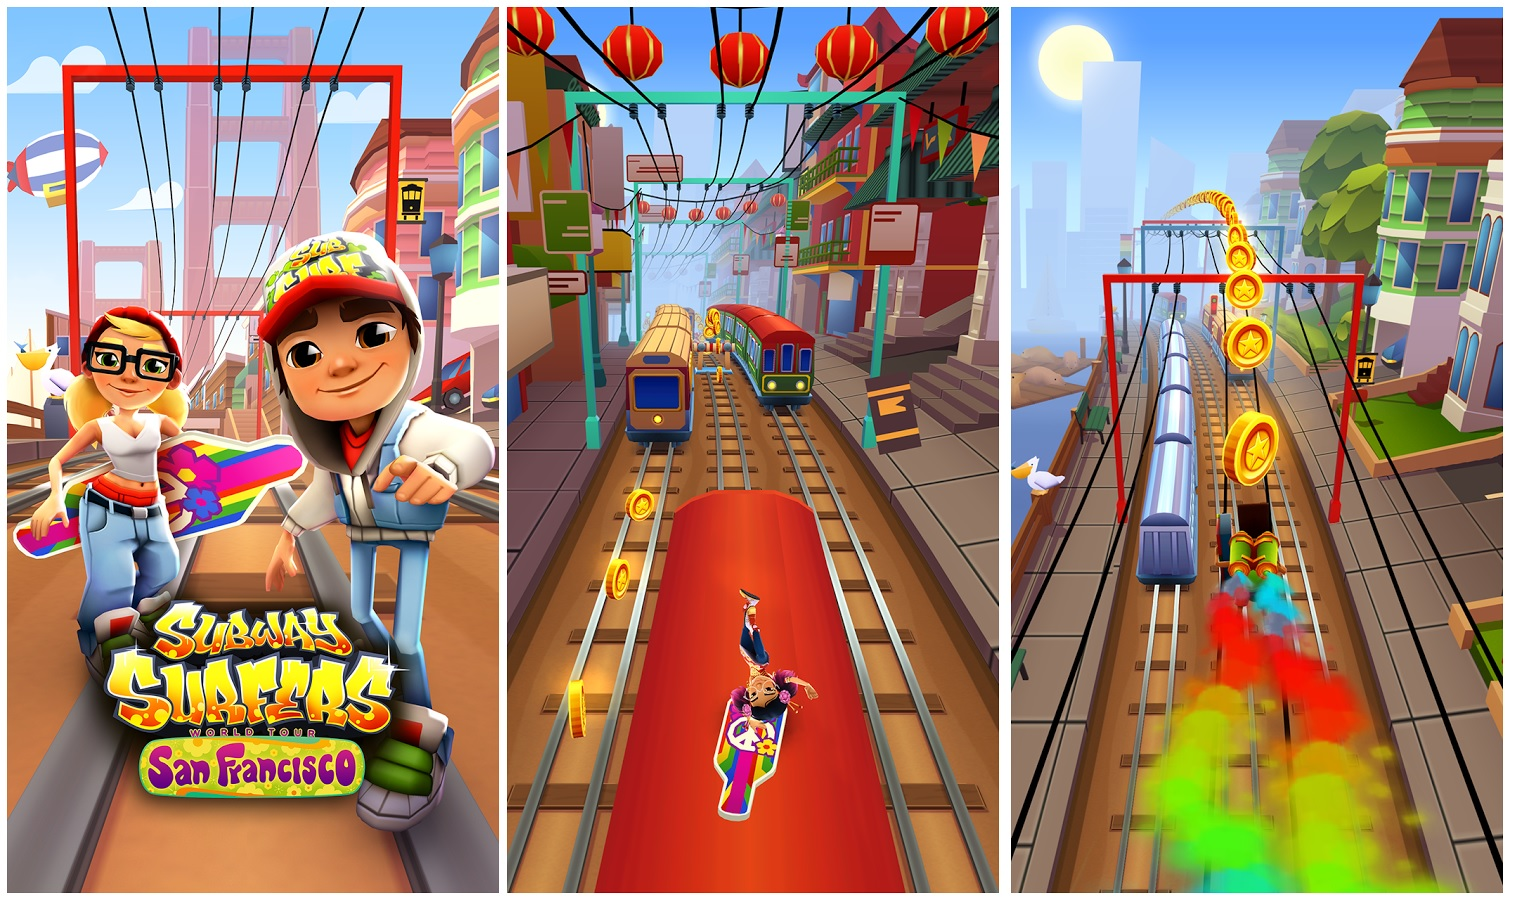 Subway surfer 3